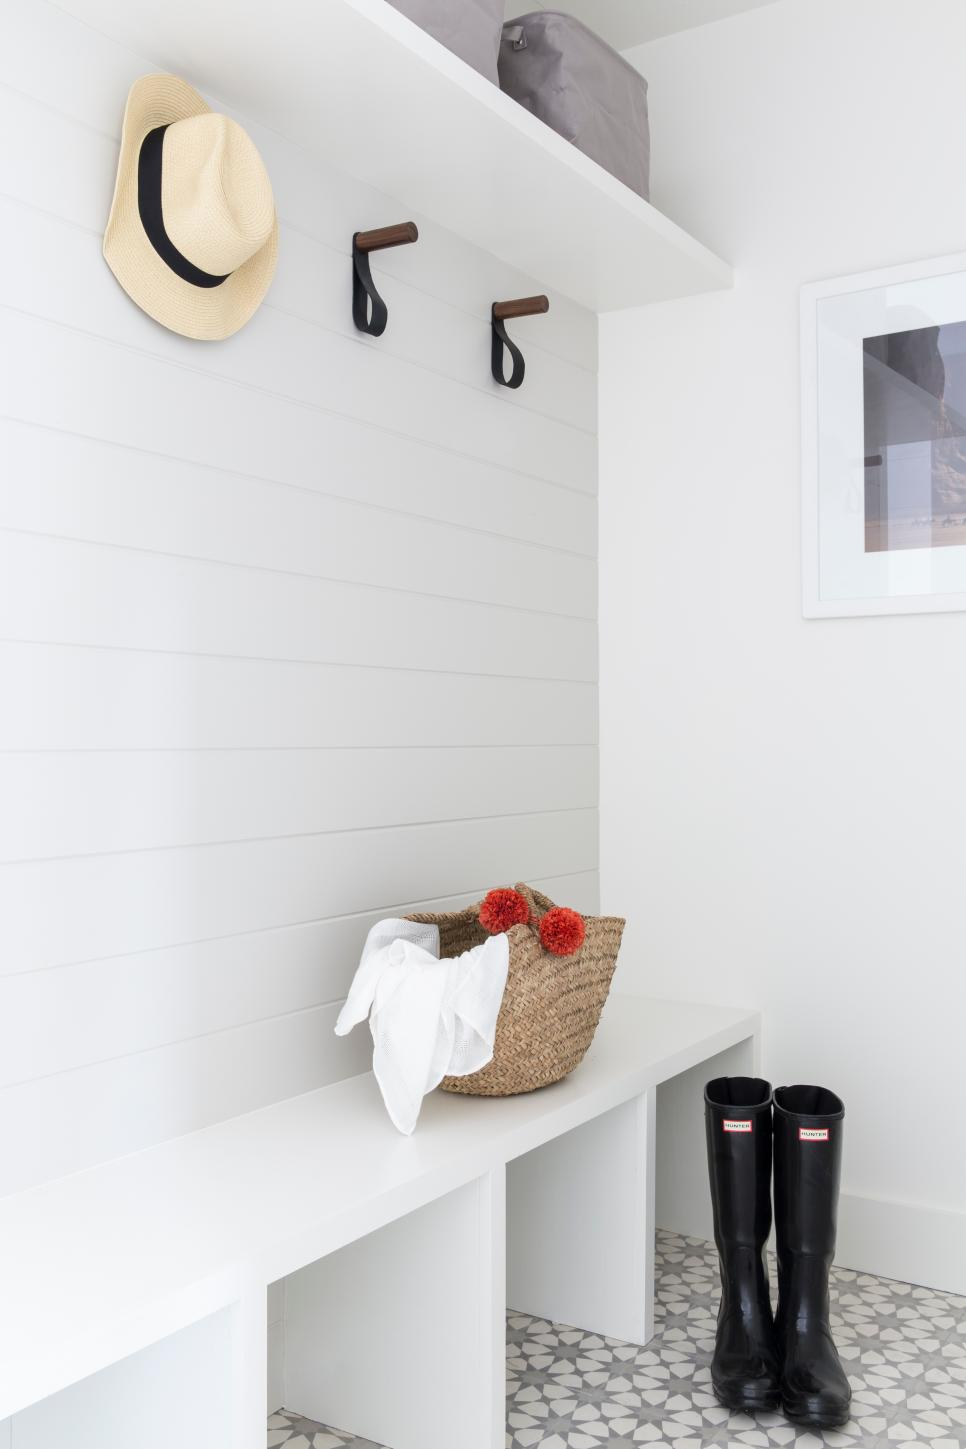 Modern Foyer With White Tiles, Hat On A Hook, And Boots On Tile Floors